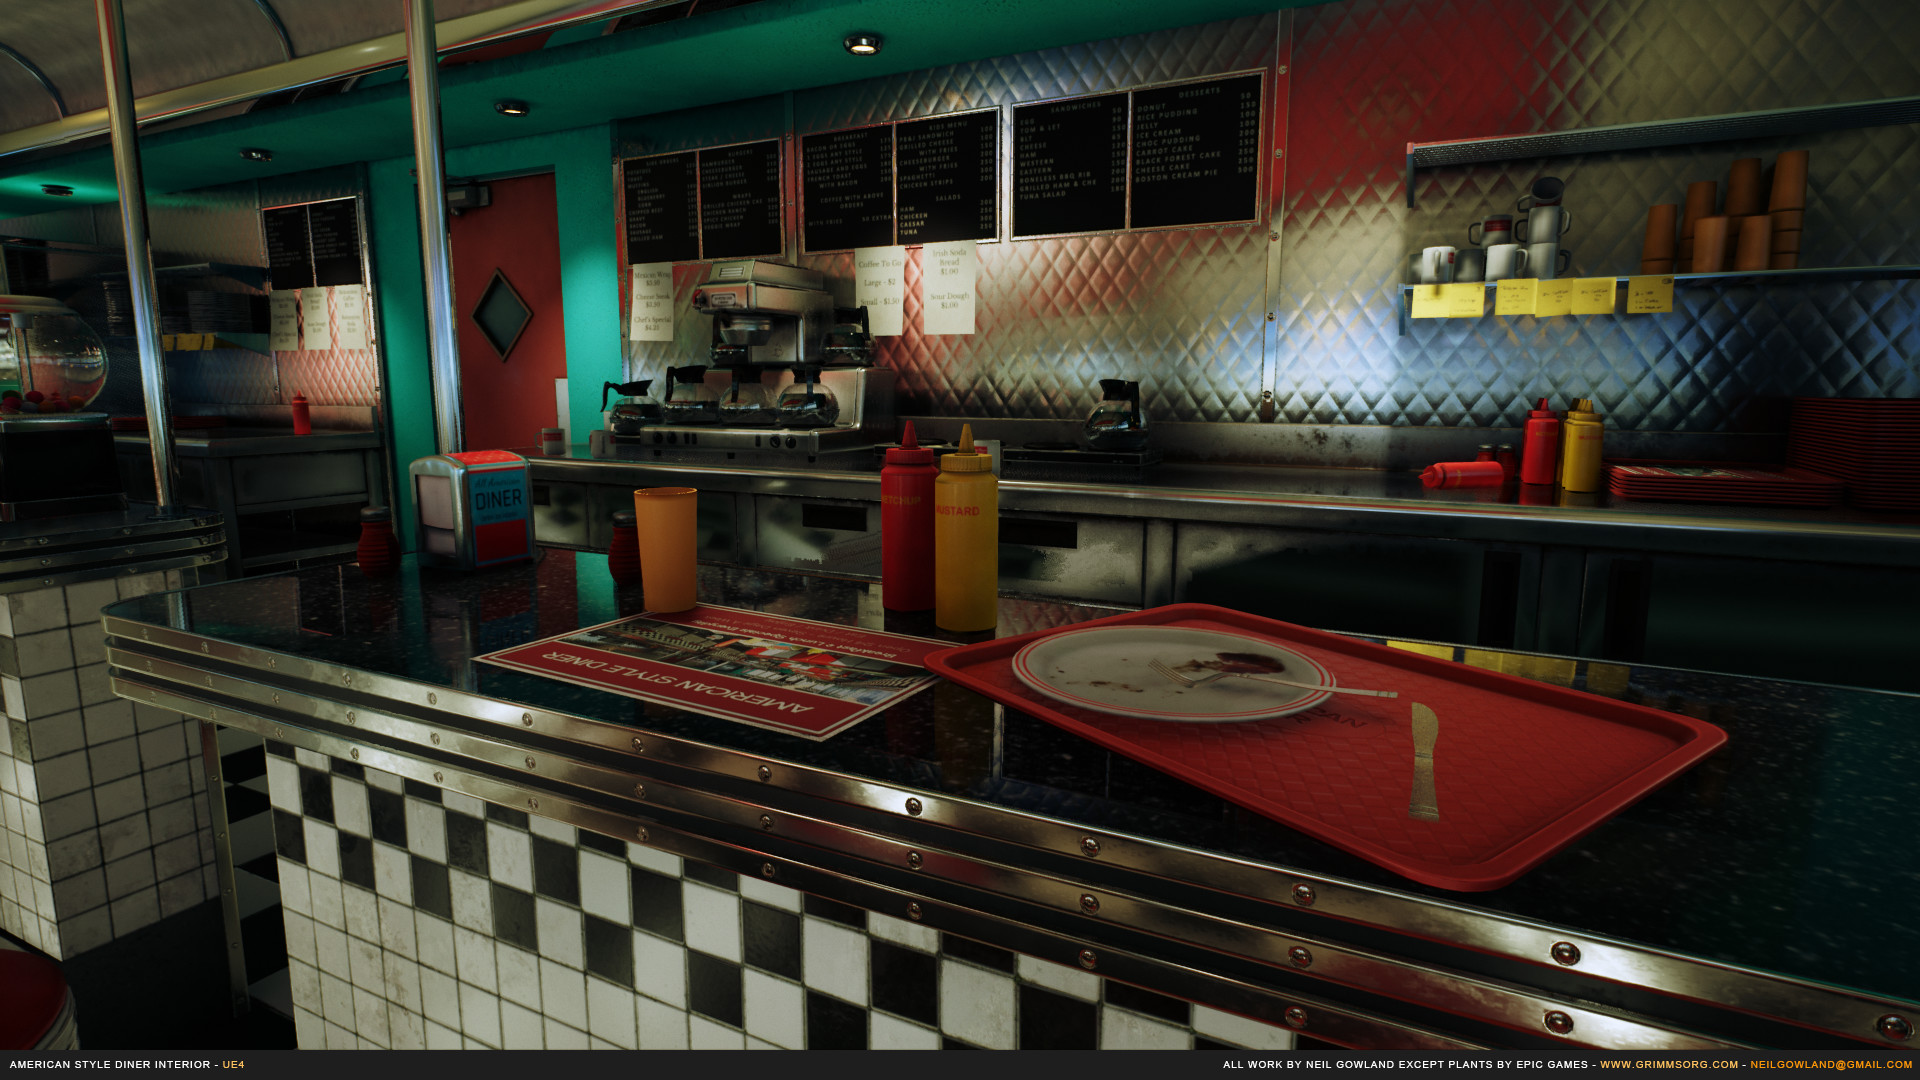 Neil gowland americanstylediner screenshot 08